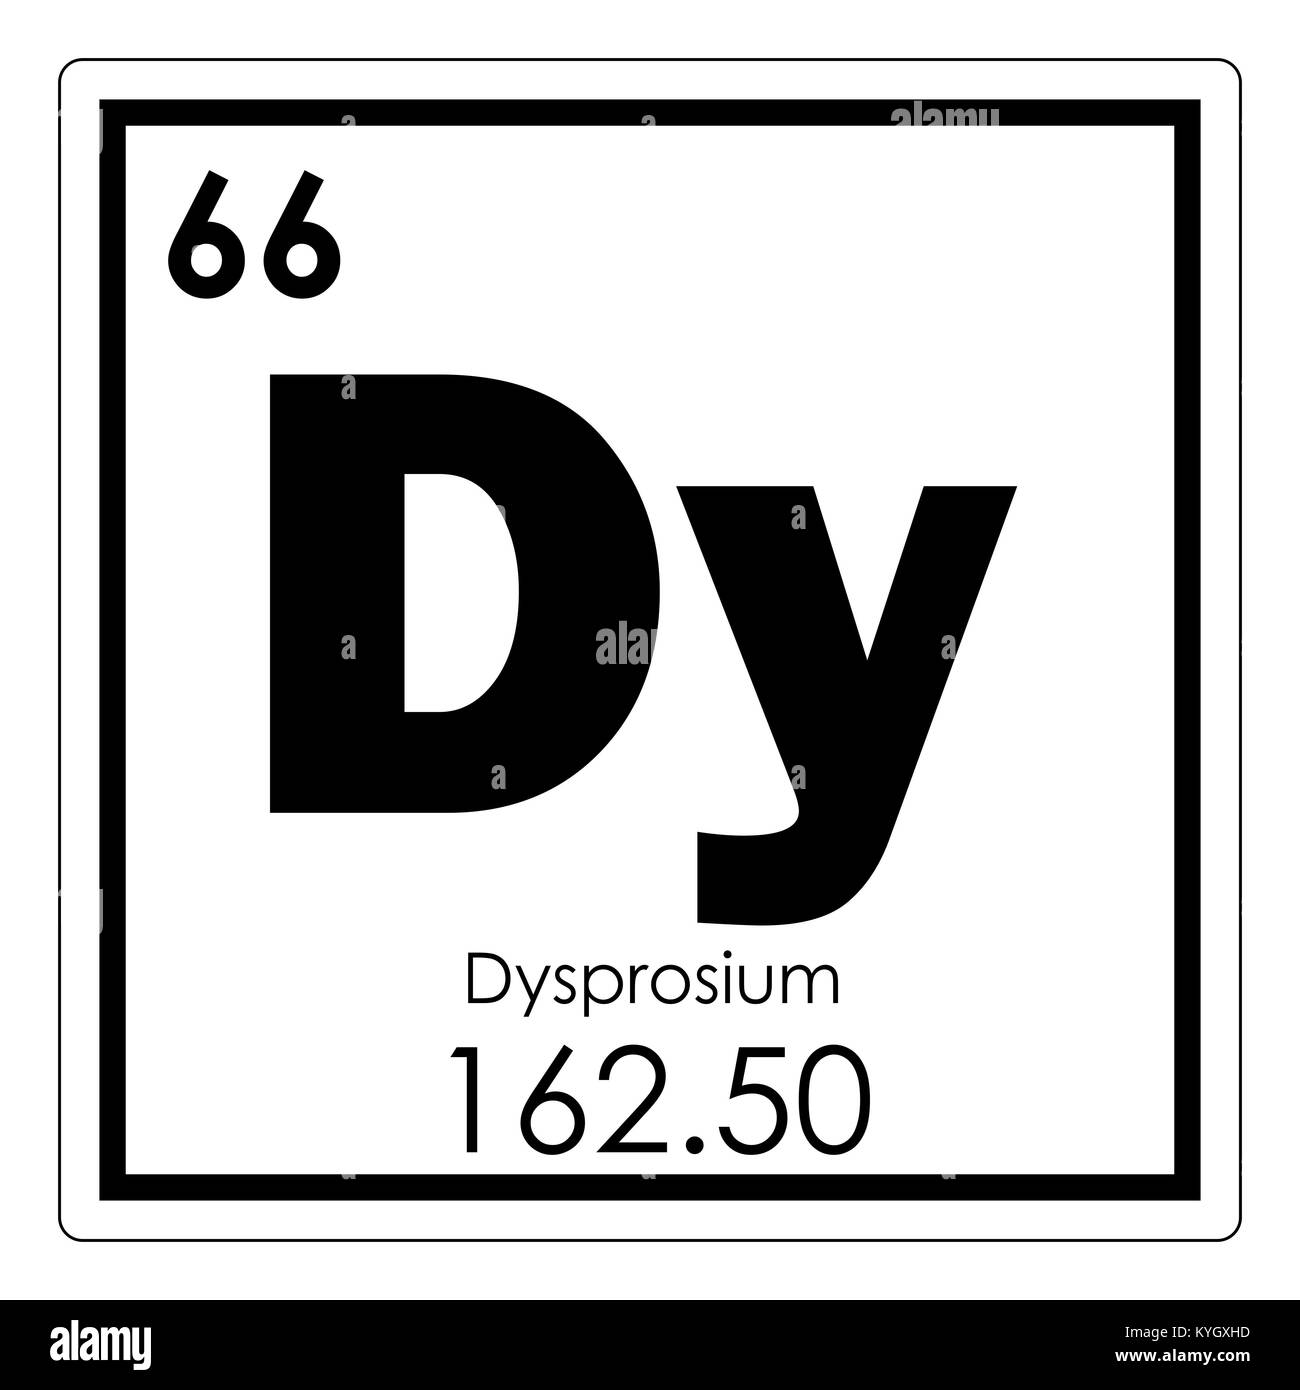 Dysprosium chemical element periodic table science symbol stock dysprosium chemical element periodic table science symbol urtaz Images